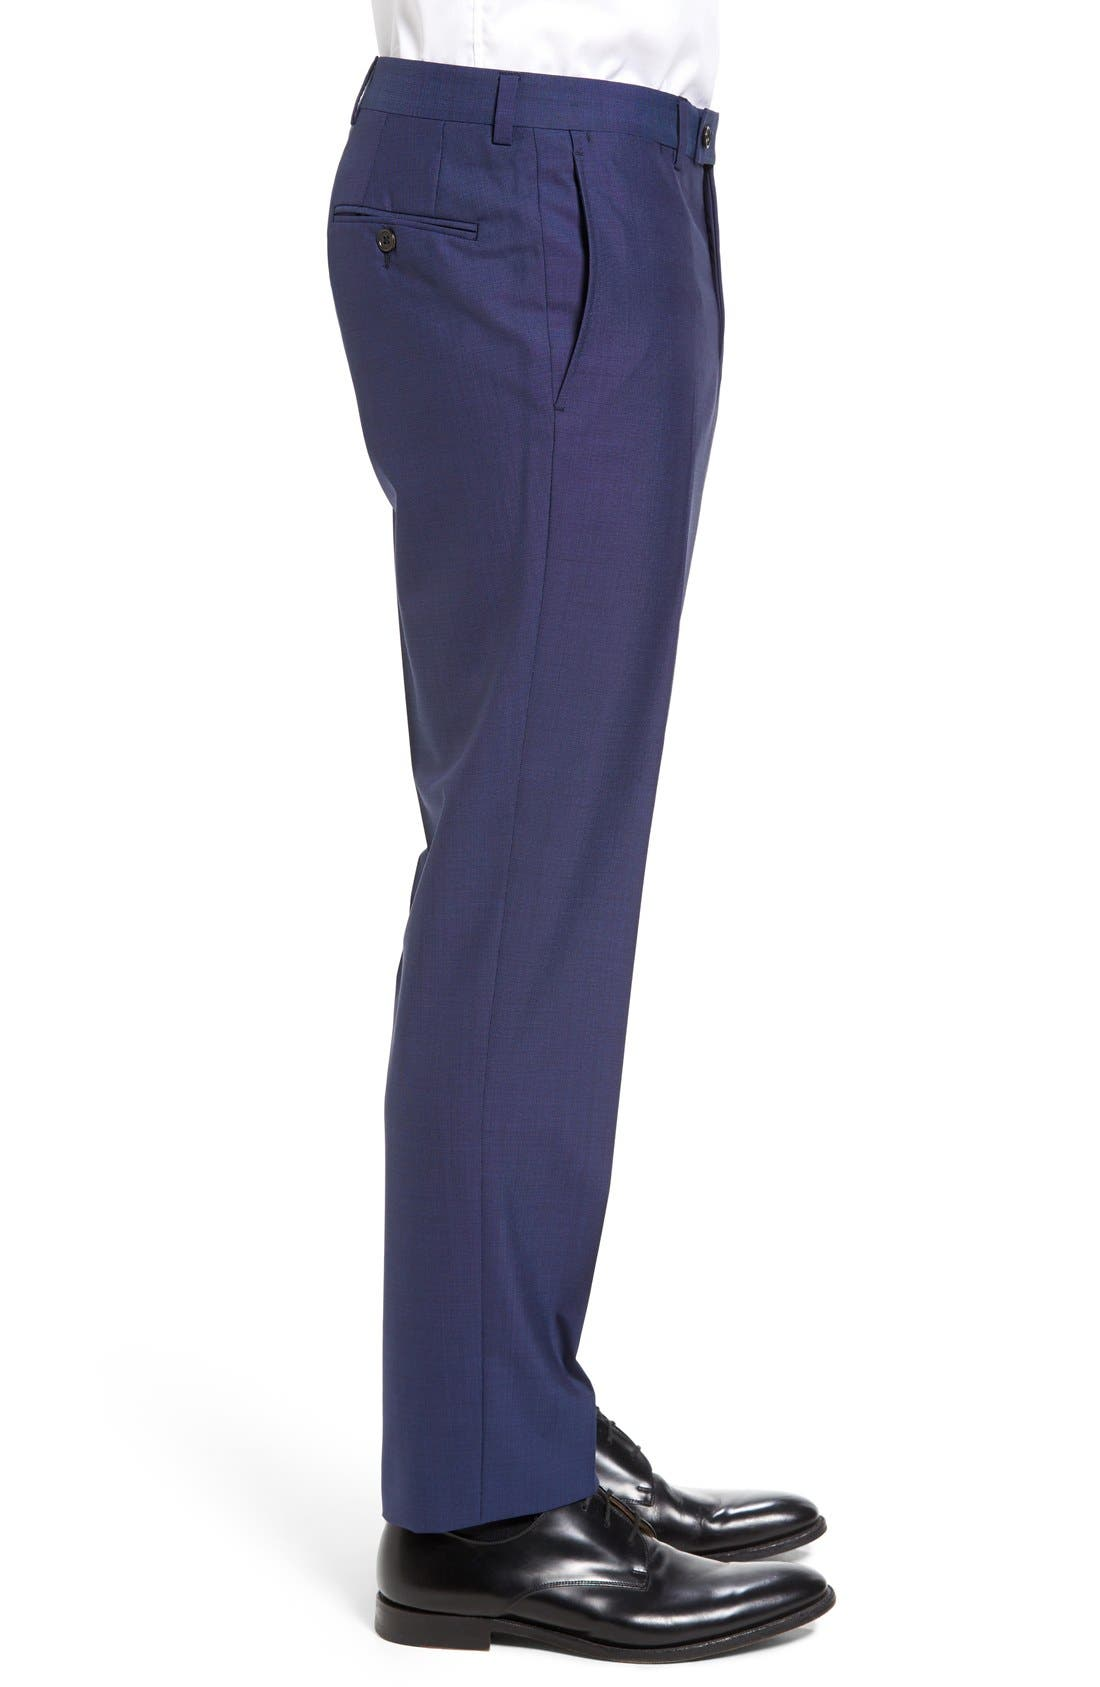 TED BAKER LONDON, Jefferson Flat Front Solid Wool Trousers, Alternate thumbnail 9, color, BLUE